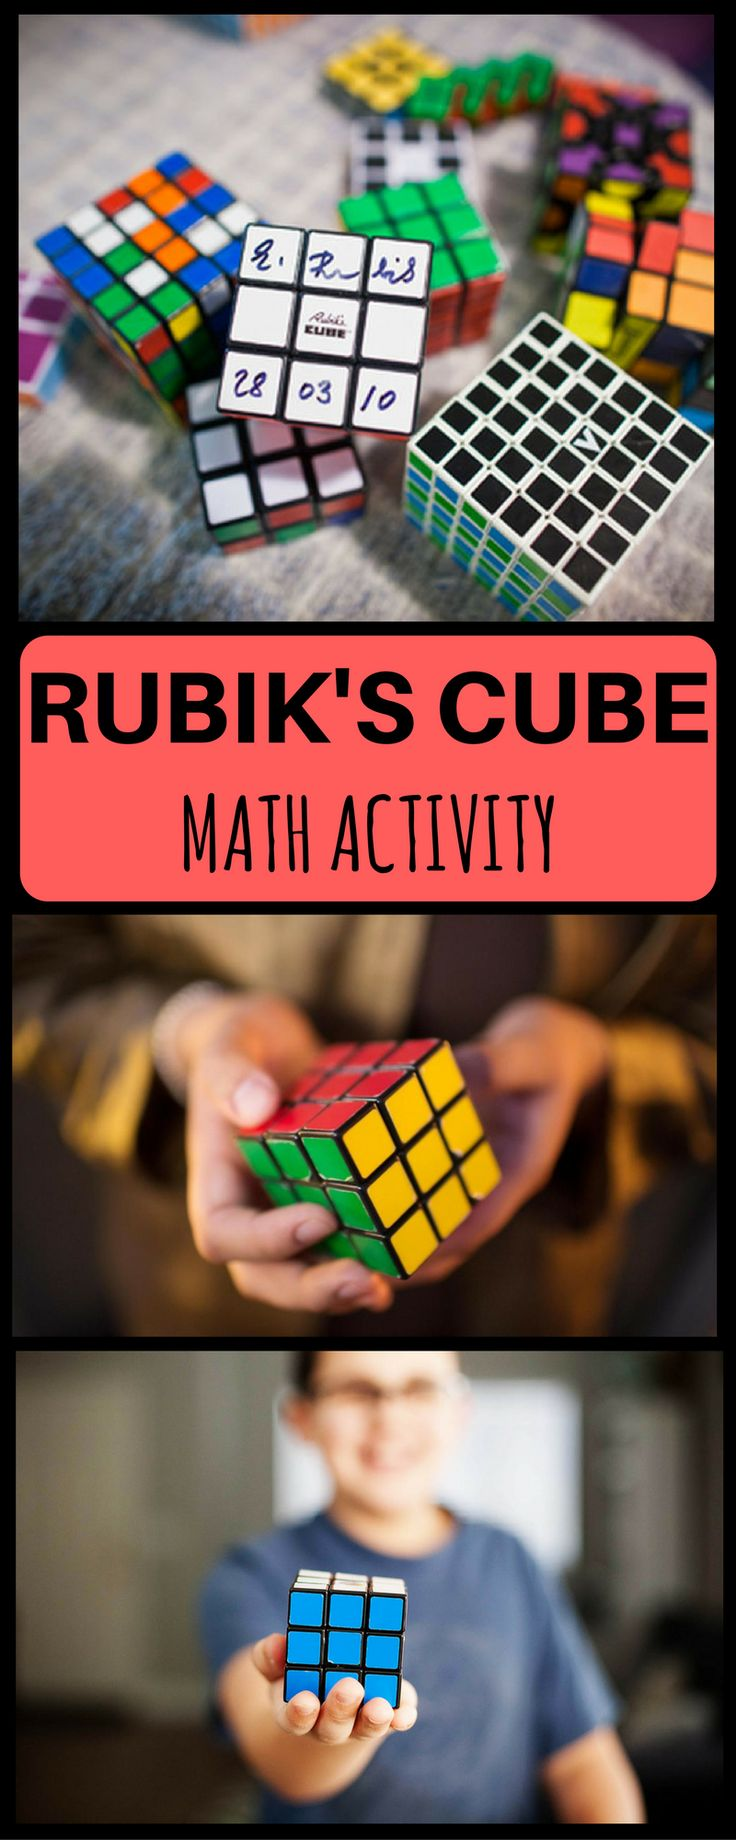 This DIY Rubik's Cube Math activity involves Rubiks Cube and is hassle-and-prep-free to be conducted in class or home for kids of all grades be it 2nd grade third grade 4th or 5th grade. Use to for reviewing math lessons be it addition, subtraction, multiplication, division or fractions or decimals.